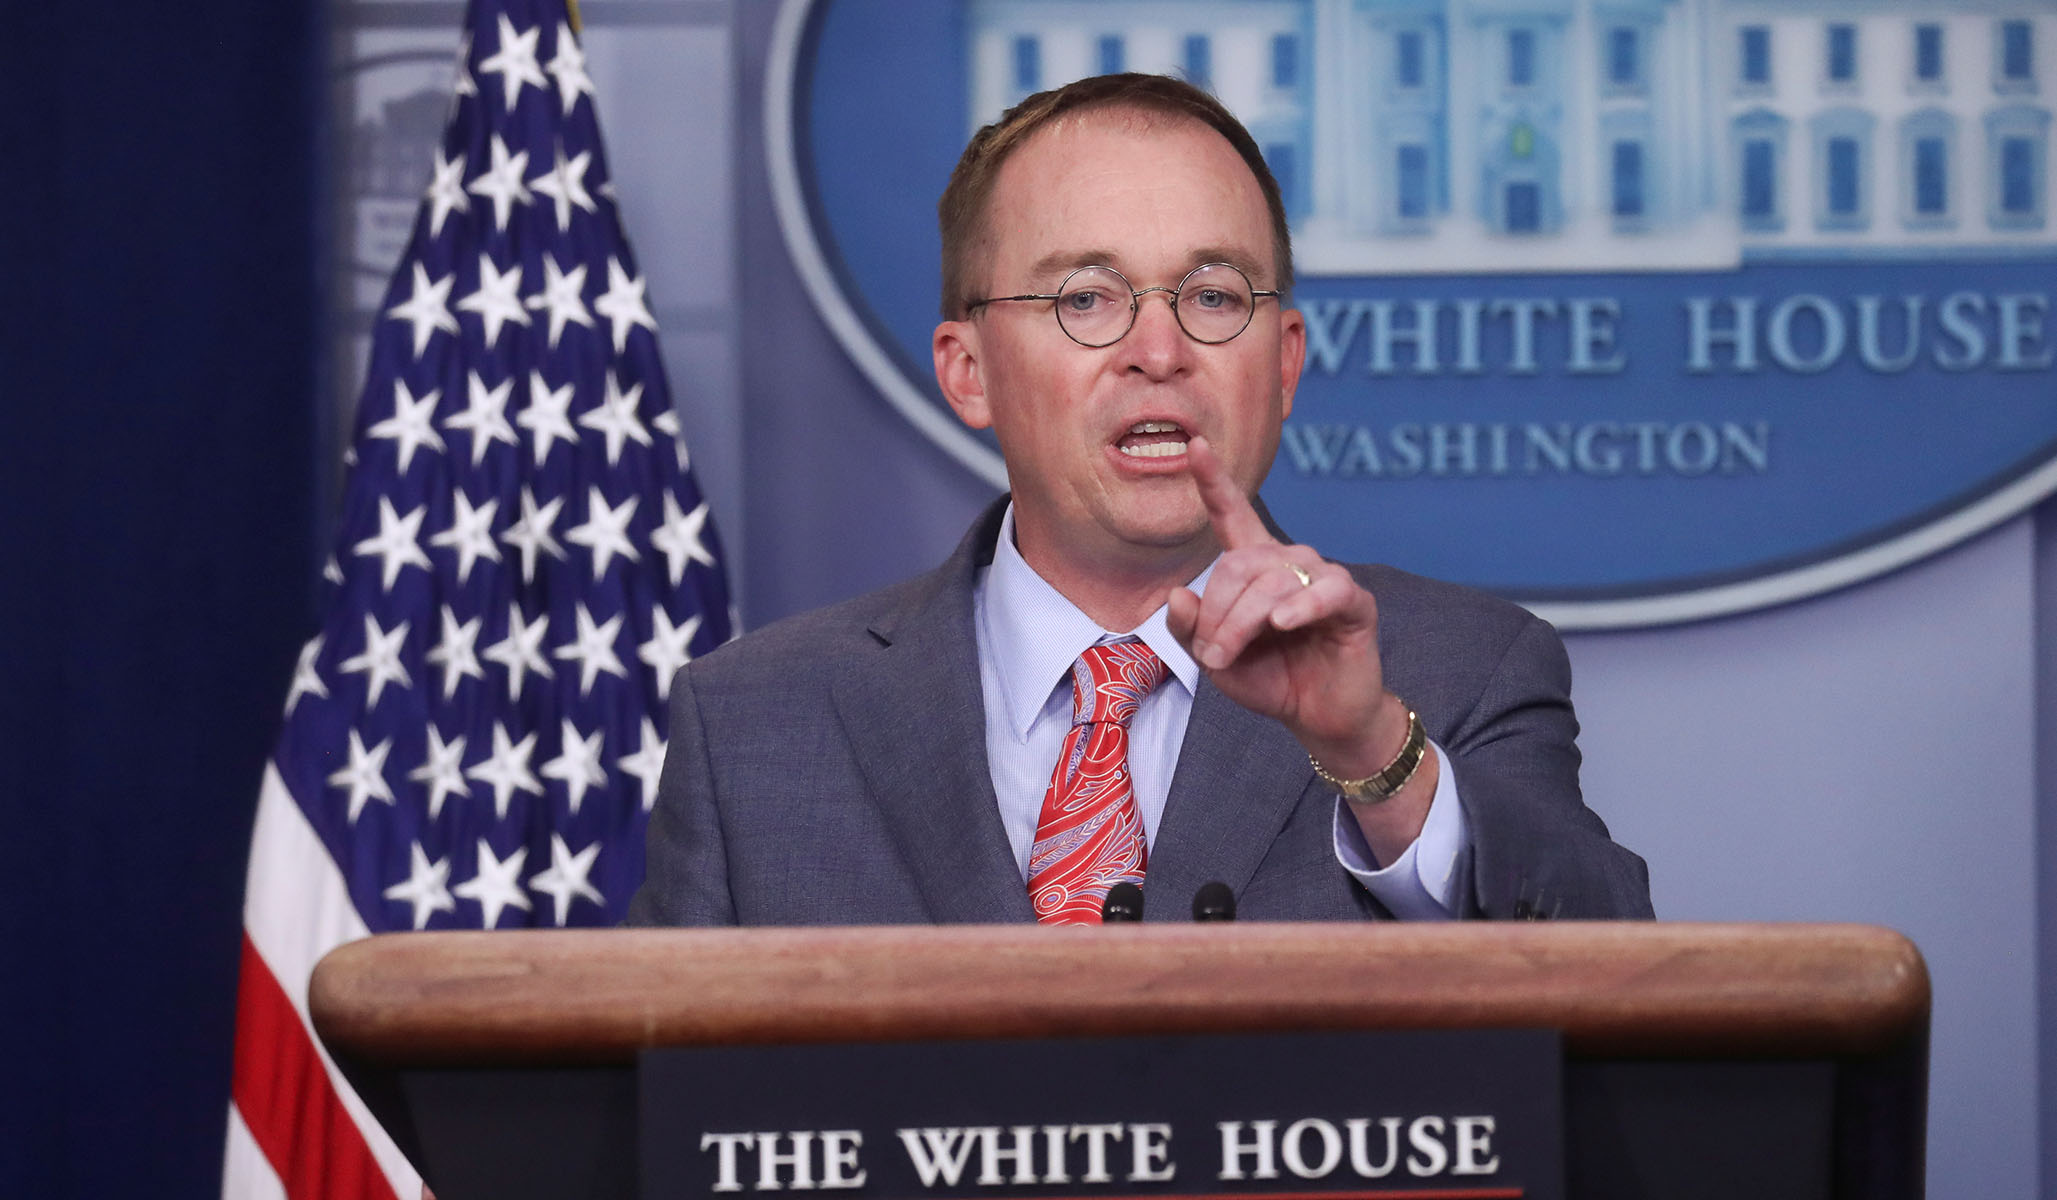 Mulvaney Confirms Trump Withheld Aid to Pressure Ukraine to Investigate 2016 Election Interference